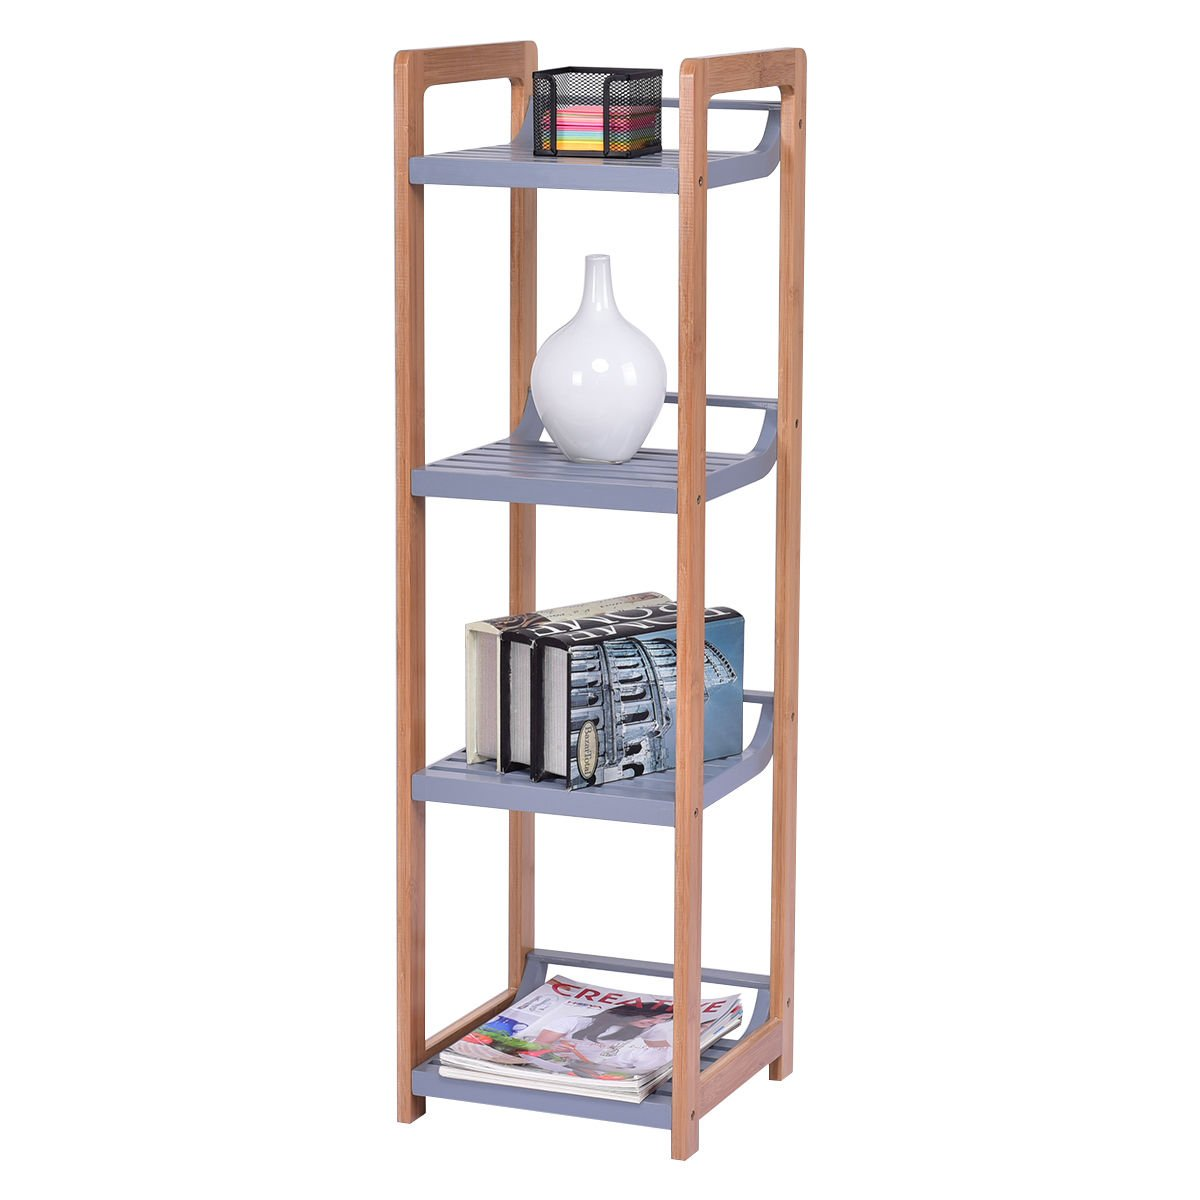 totoshop Multifunction Storage Tower Rack Shelving Shelf Units Stand Bamboo New 4 Tier by totoshop (Image #9)